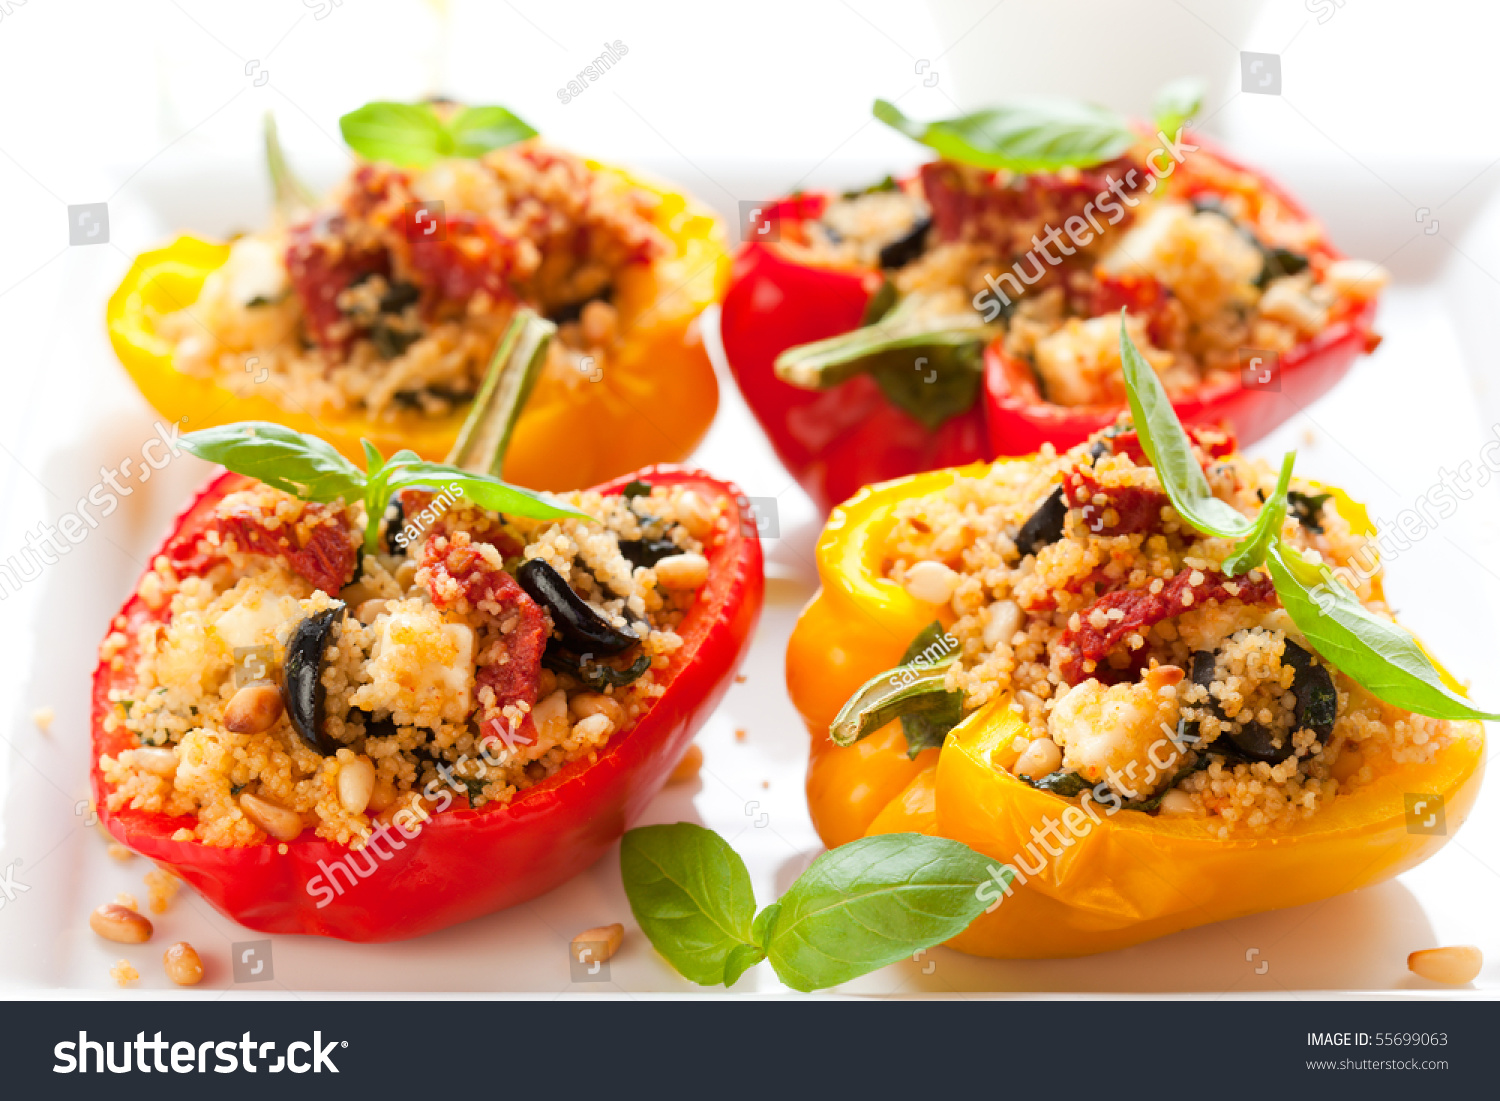 Stuffed Peppers With Couscous, Dried Tomatoes,Feta,Olives ...